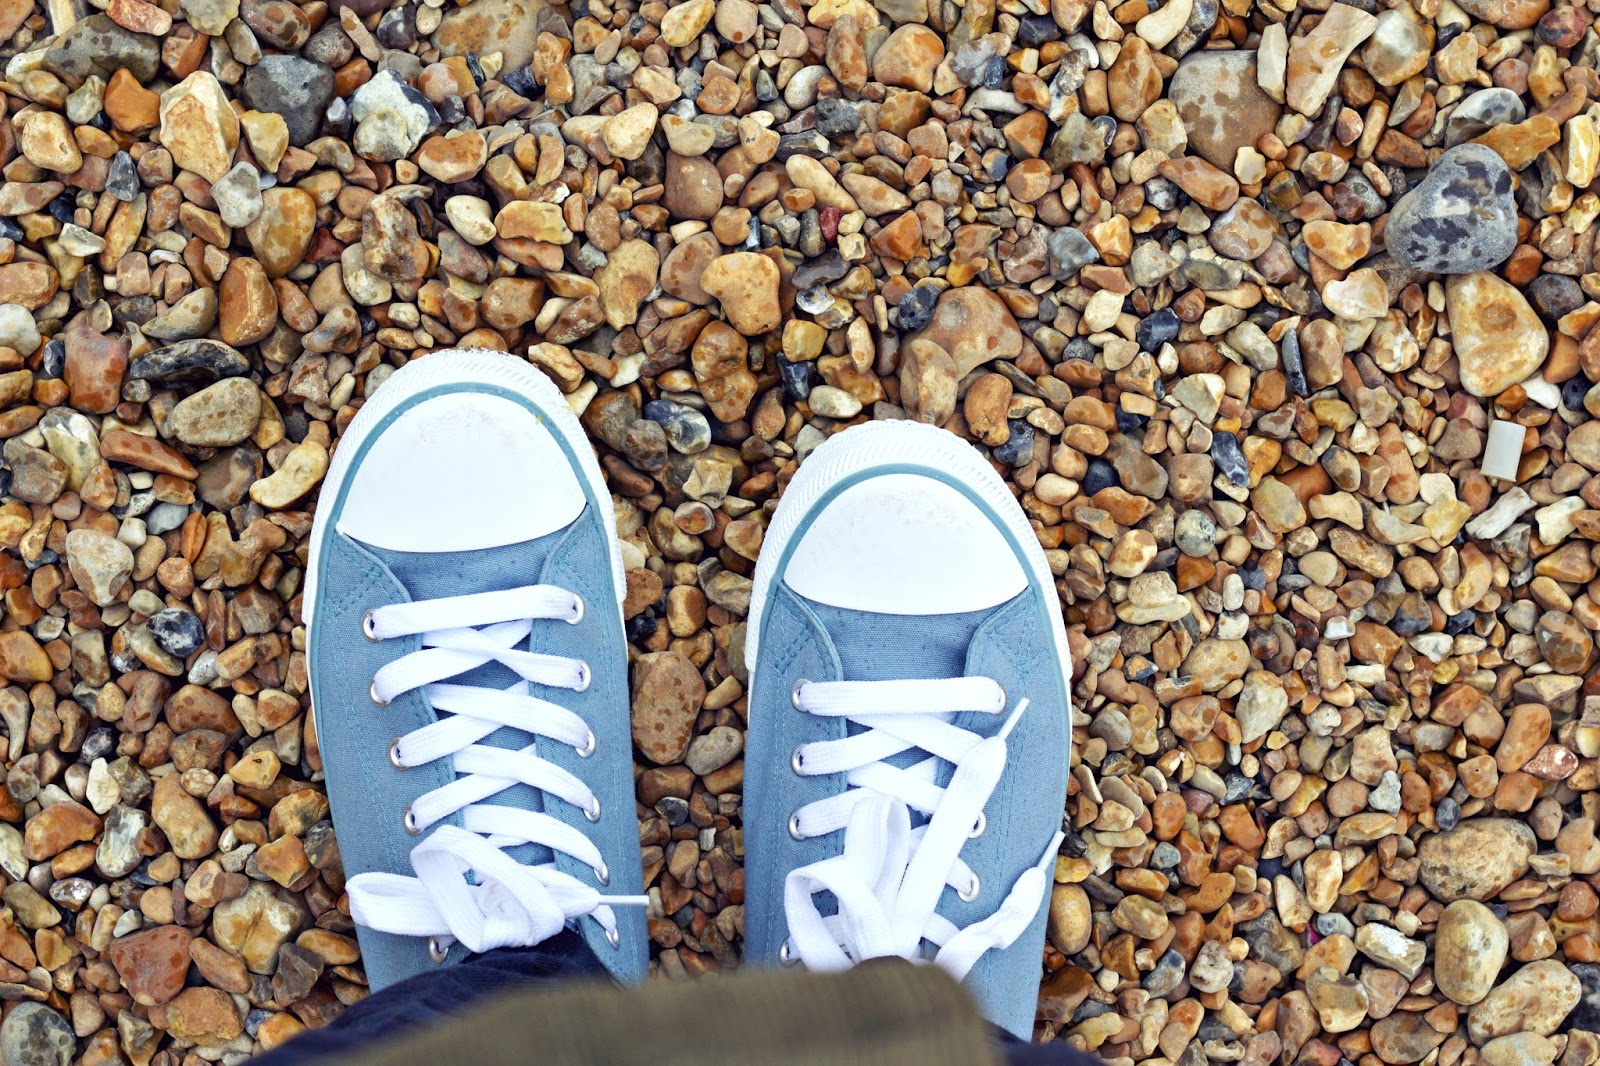 Eastbourne Pier, Blue trainers, Day out in Eastbourne, British seasides, down south UK, Pebble beaches, uk blogger, travel blogging, travel and lifestyle, eastbourne, 100 Ways to 30 Blog